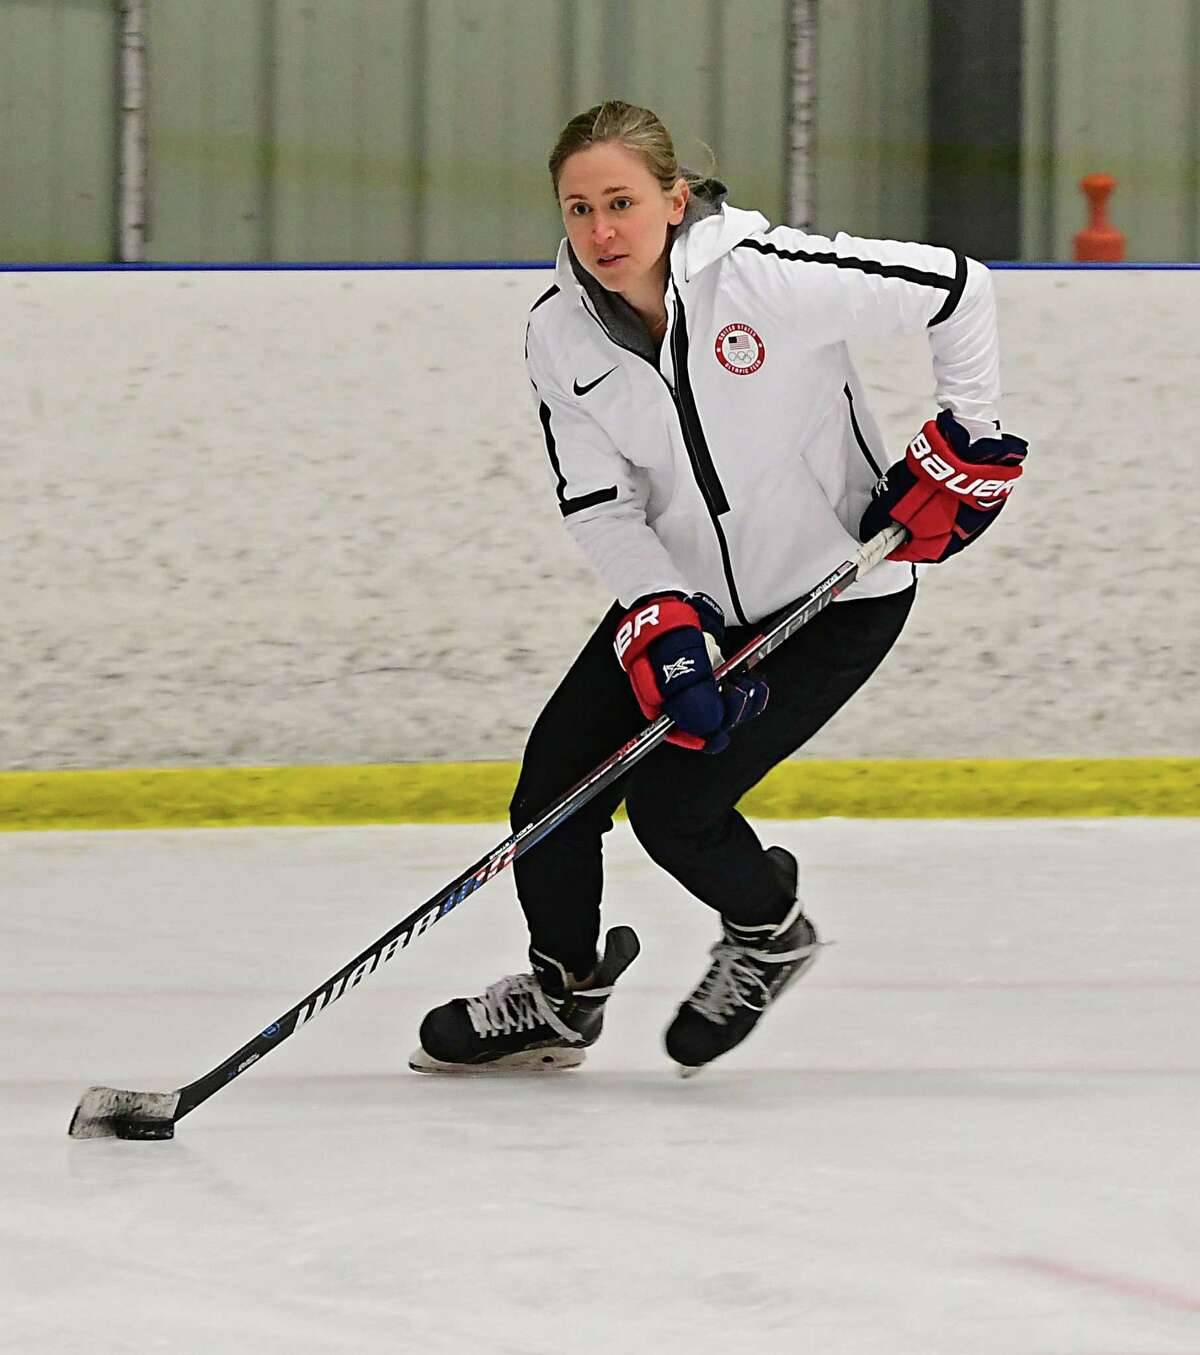 Haley Skarupa, a member of the 2018 U.S. gold medal-winning women?•s hockey team, hosts a clinic with Clifton Park-based CP Dynamo on Thursday, April 25, 2019 in Clifton Park, N.Y. (Lori Van Buren/Times Union)